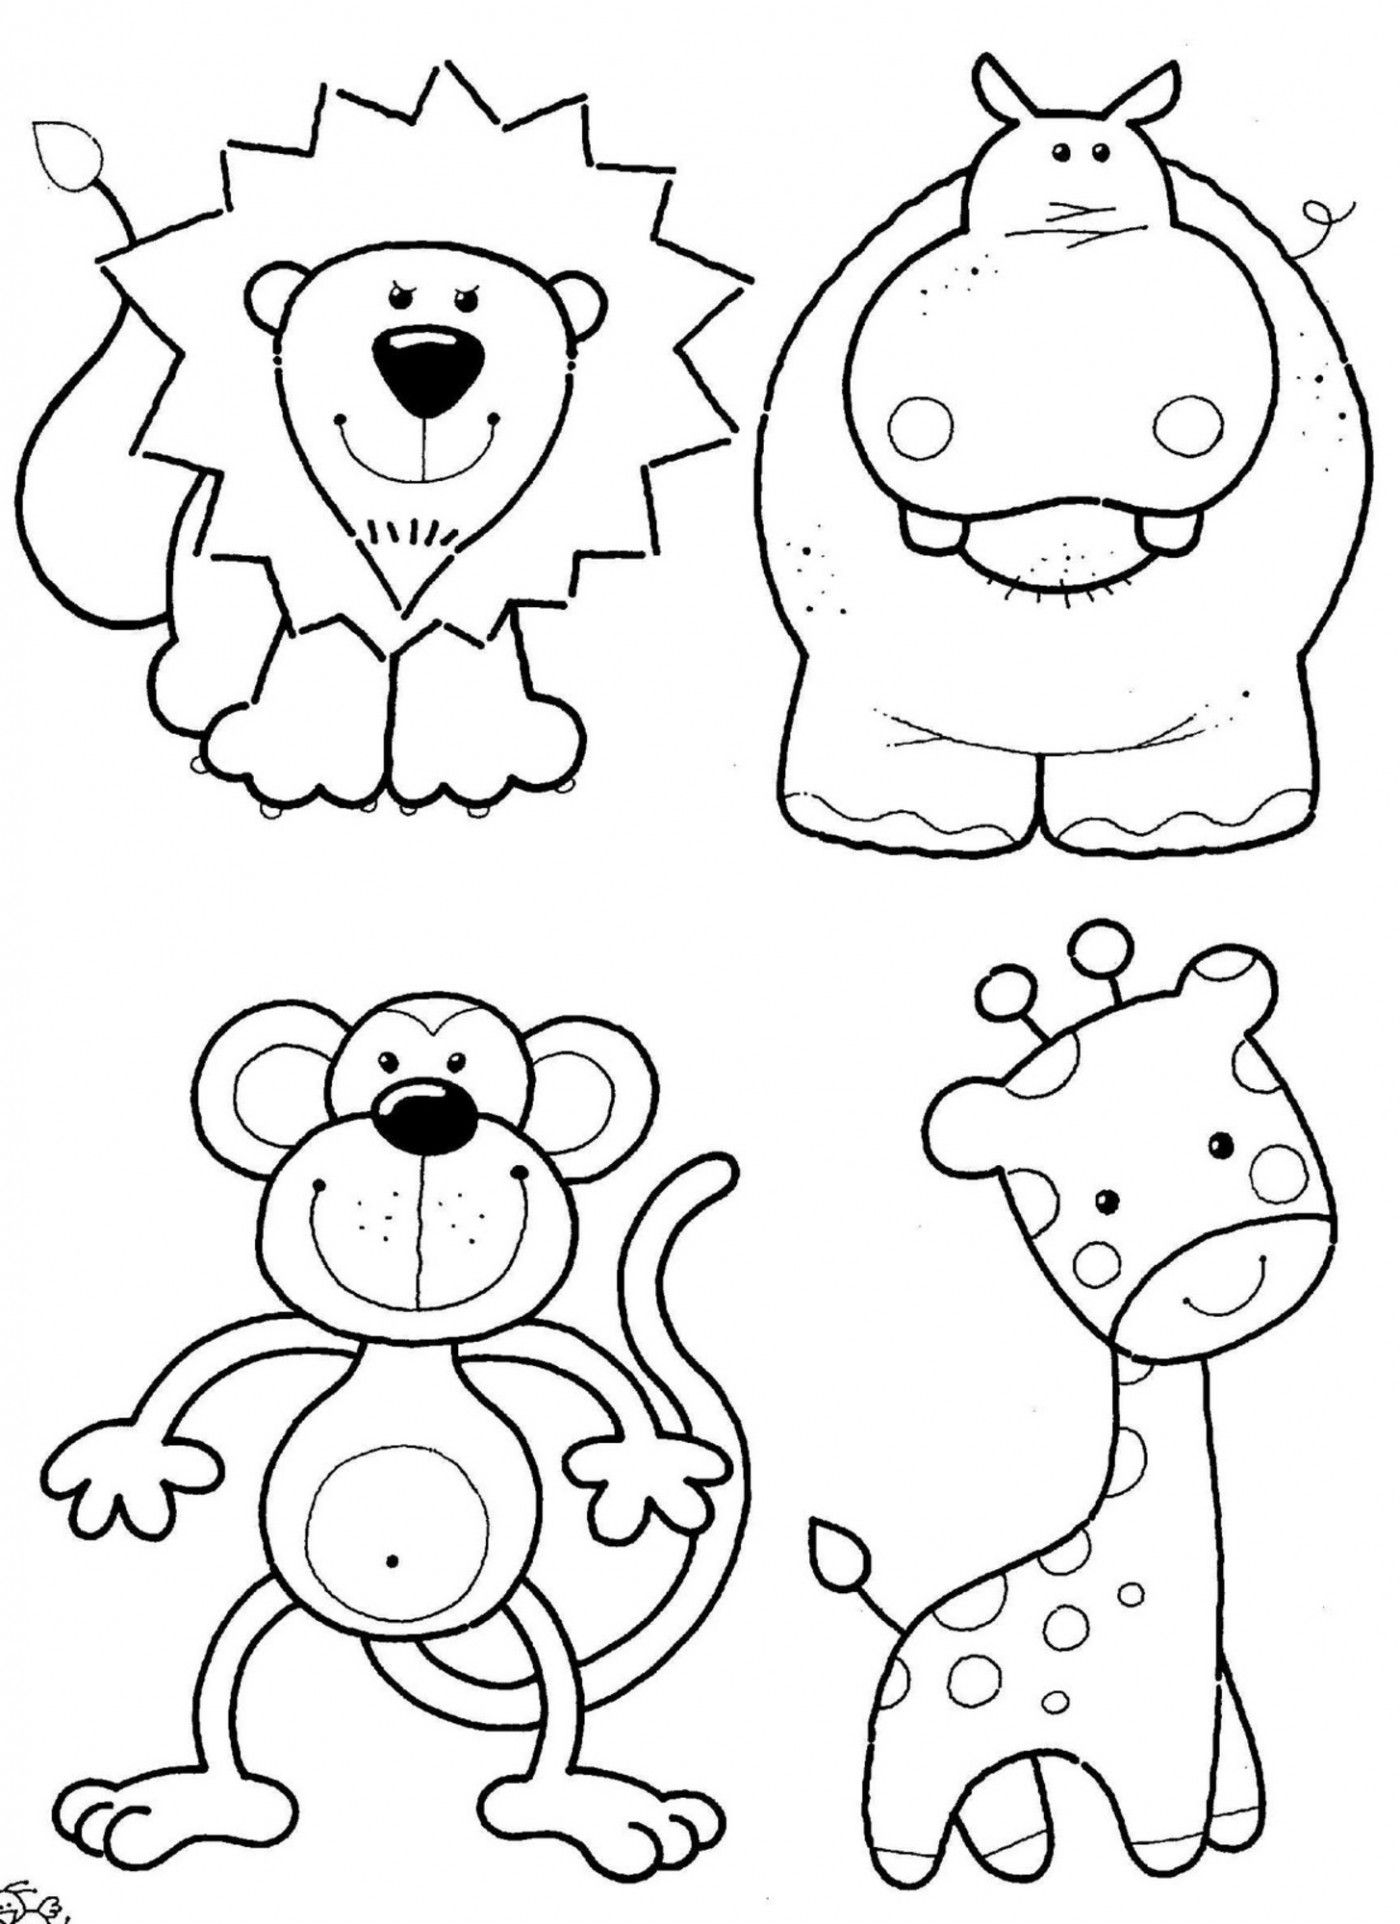 Zoo coloring pages printable